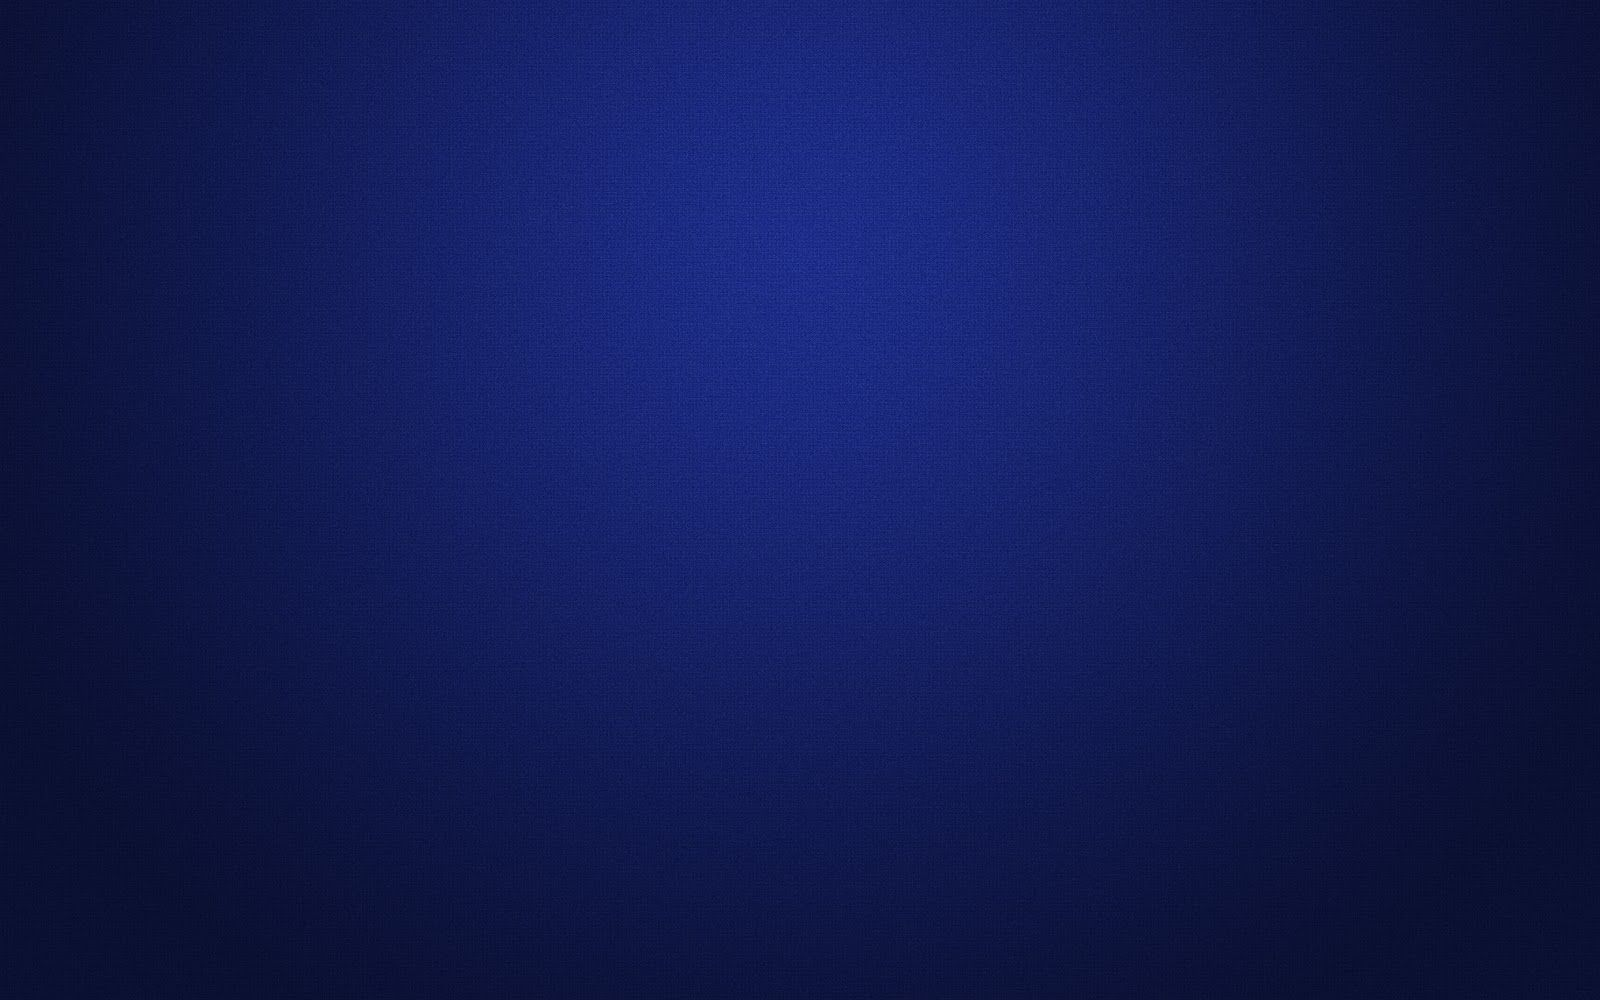 the cool blue hd wallpapers backgrounds pinterest